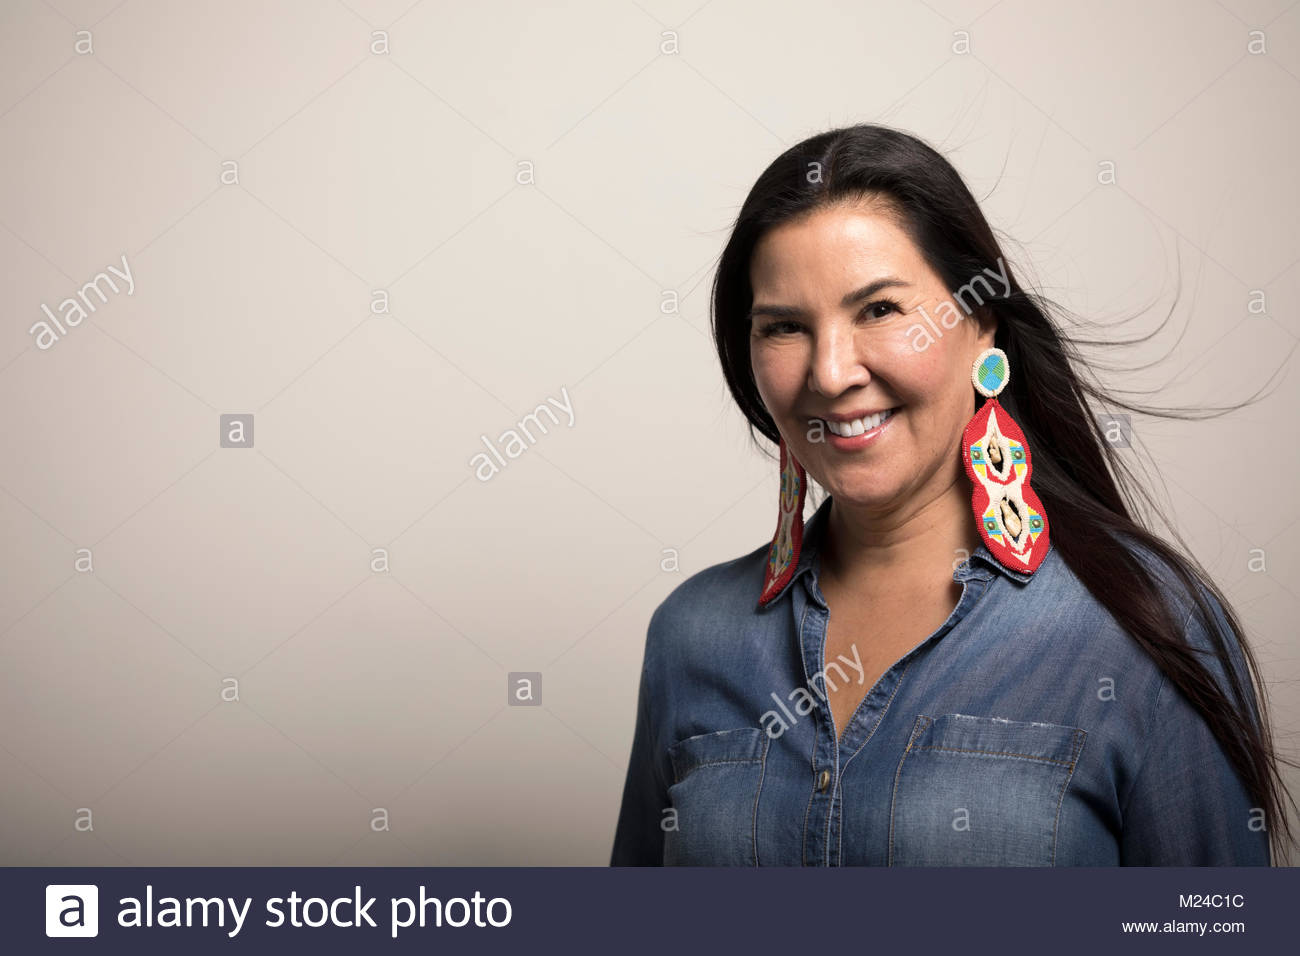 Portrait smiling, confident mature Native American woman with colorful earrings - Stock Image